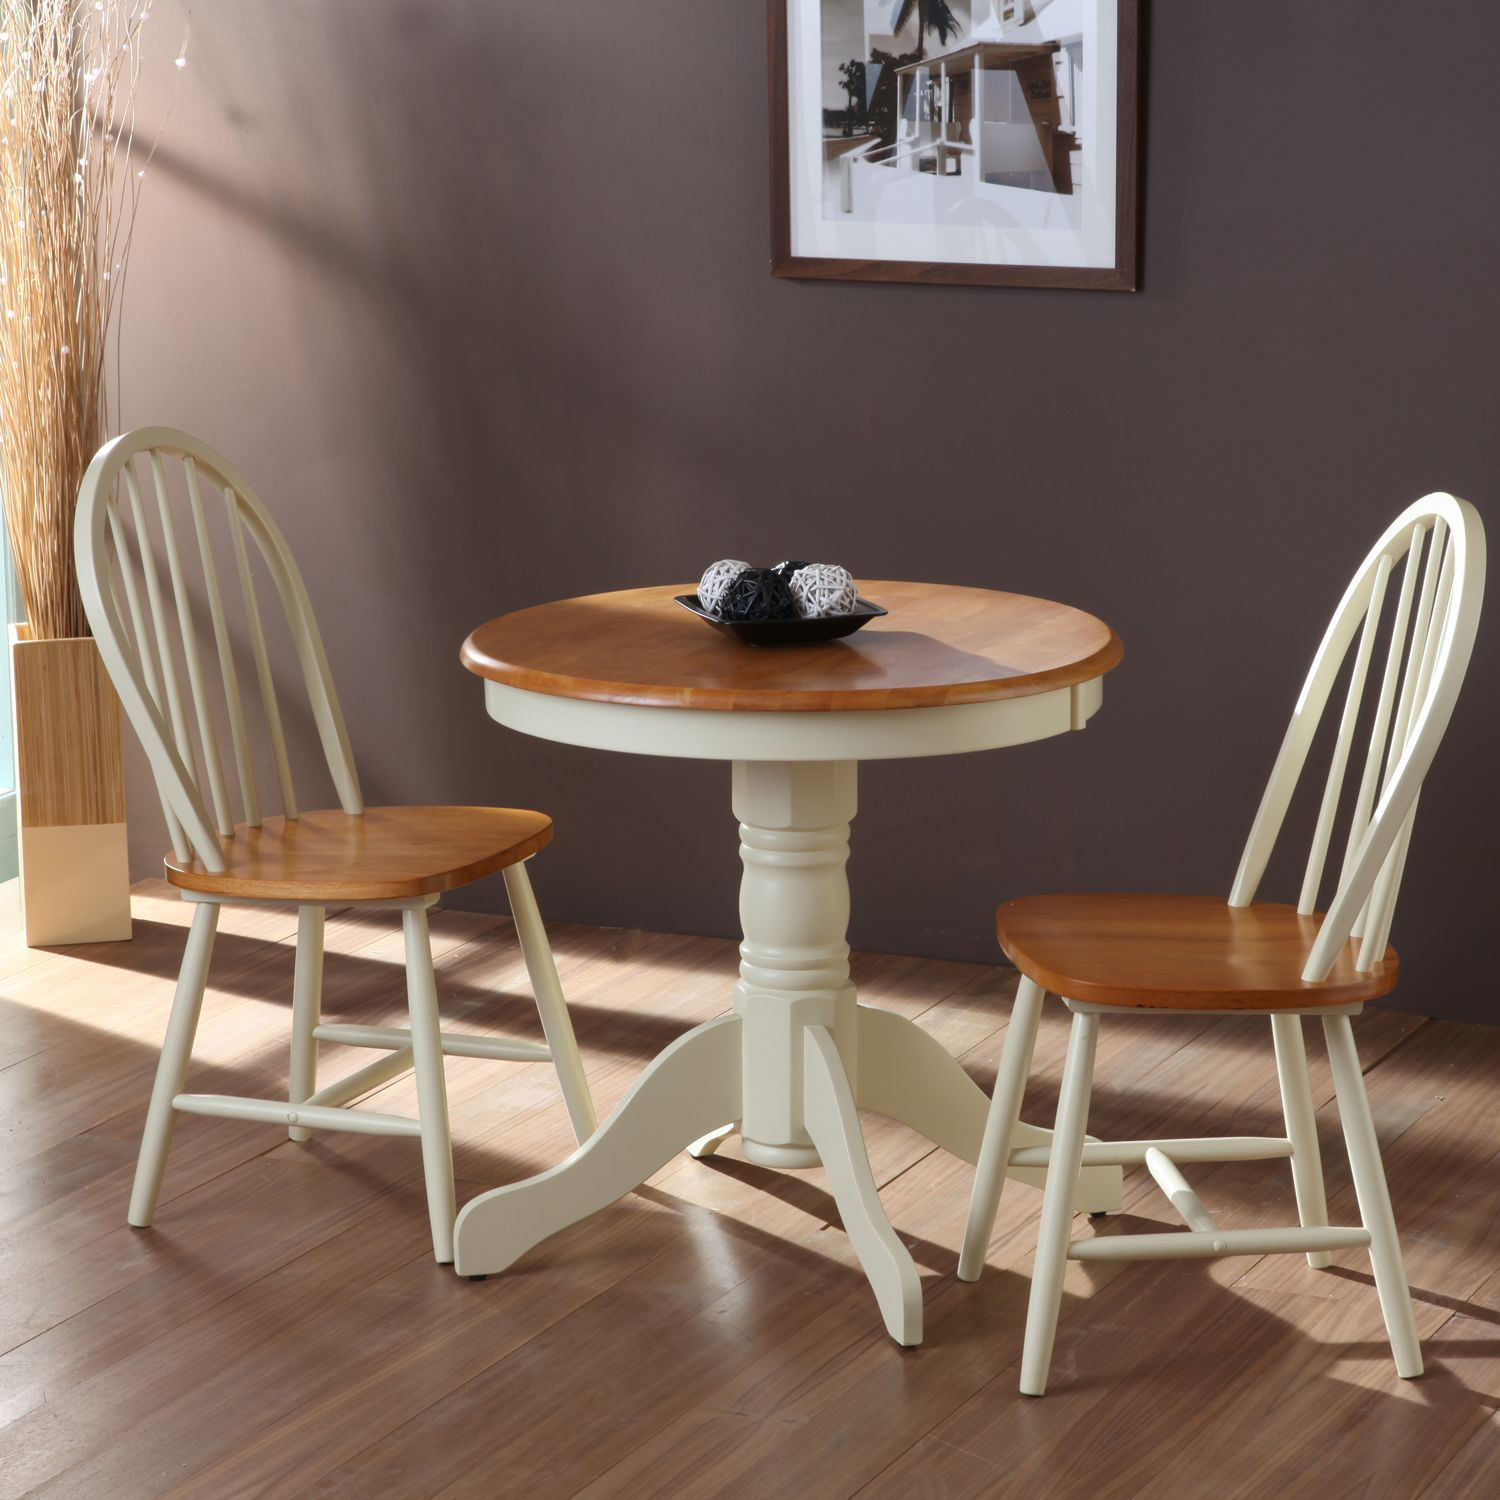 Astonishing White Pedestal Round Dining Table And 2 Windsor Dining Chairs On Laminate Wo Round Dining Table Small Wooden Table And Chairs Windsor Dining Chairs